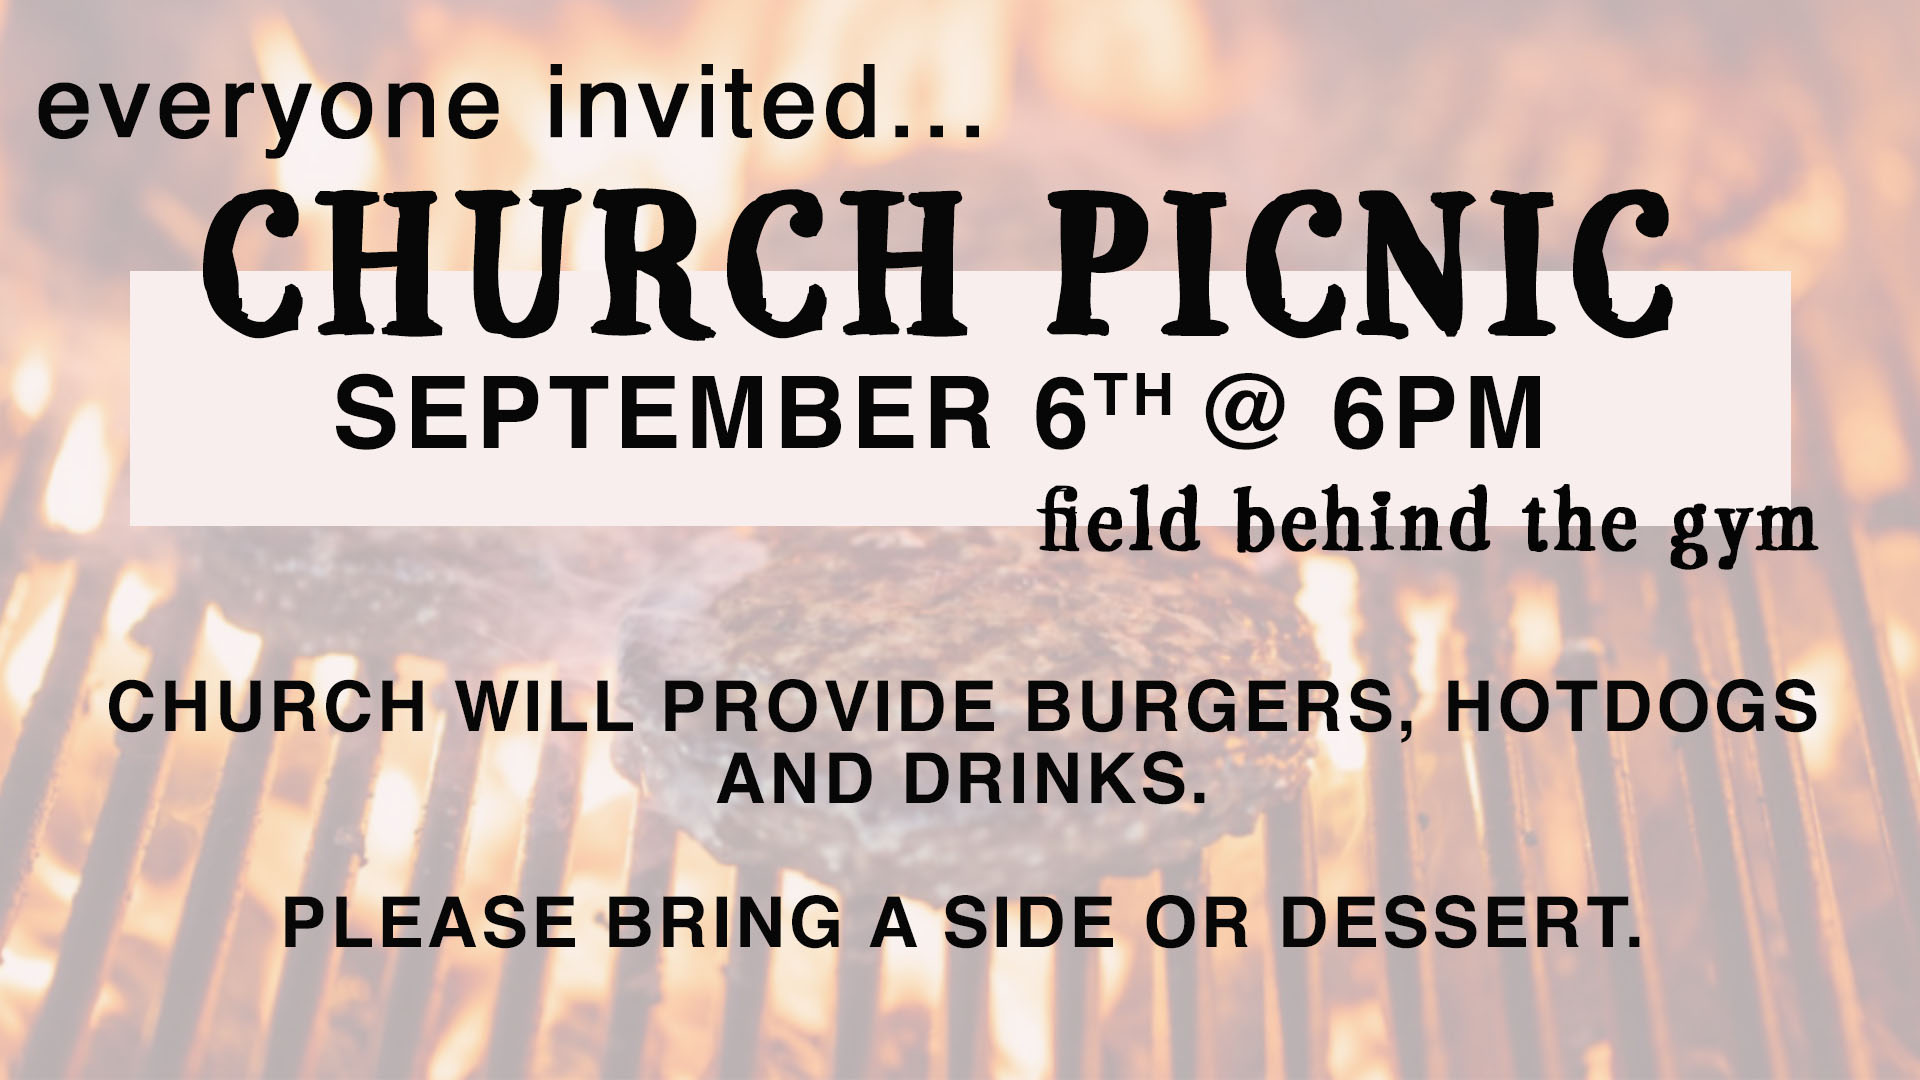 church picnic september.jpg